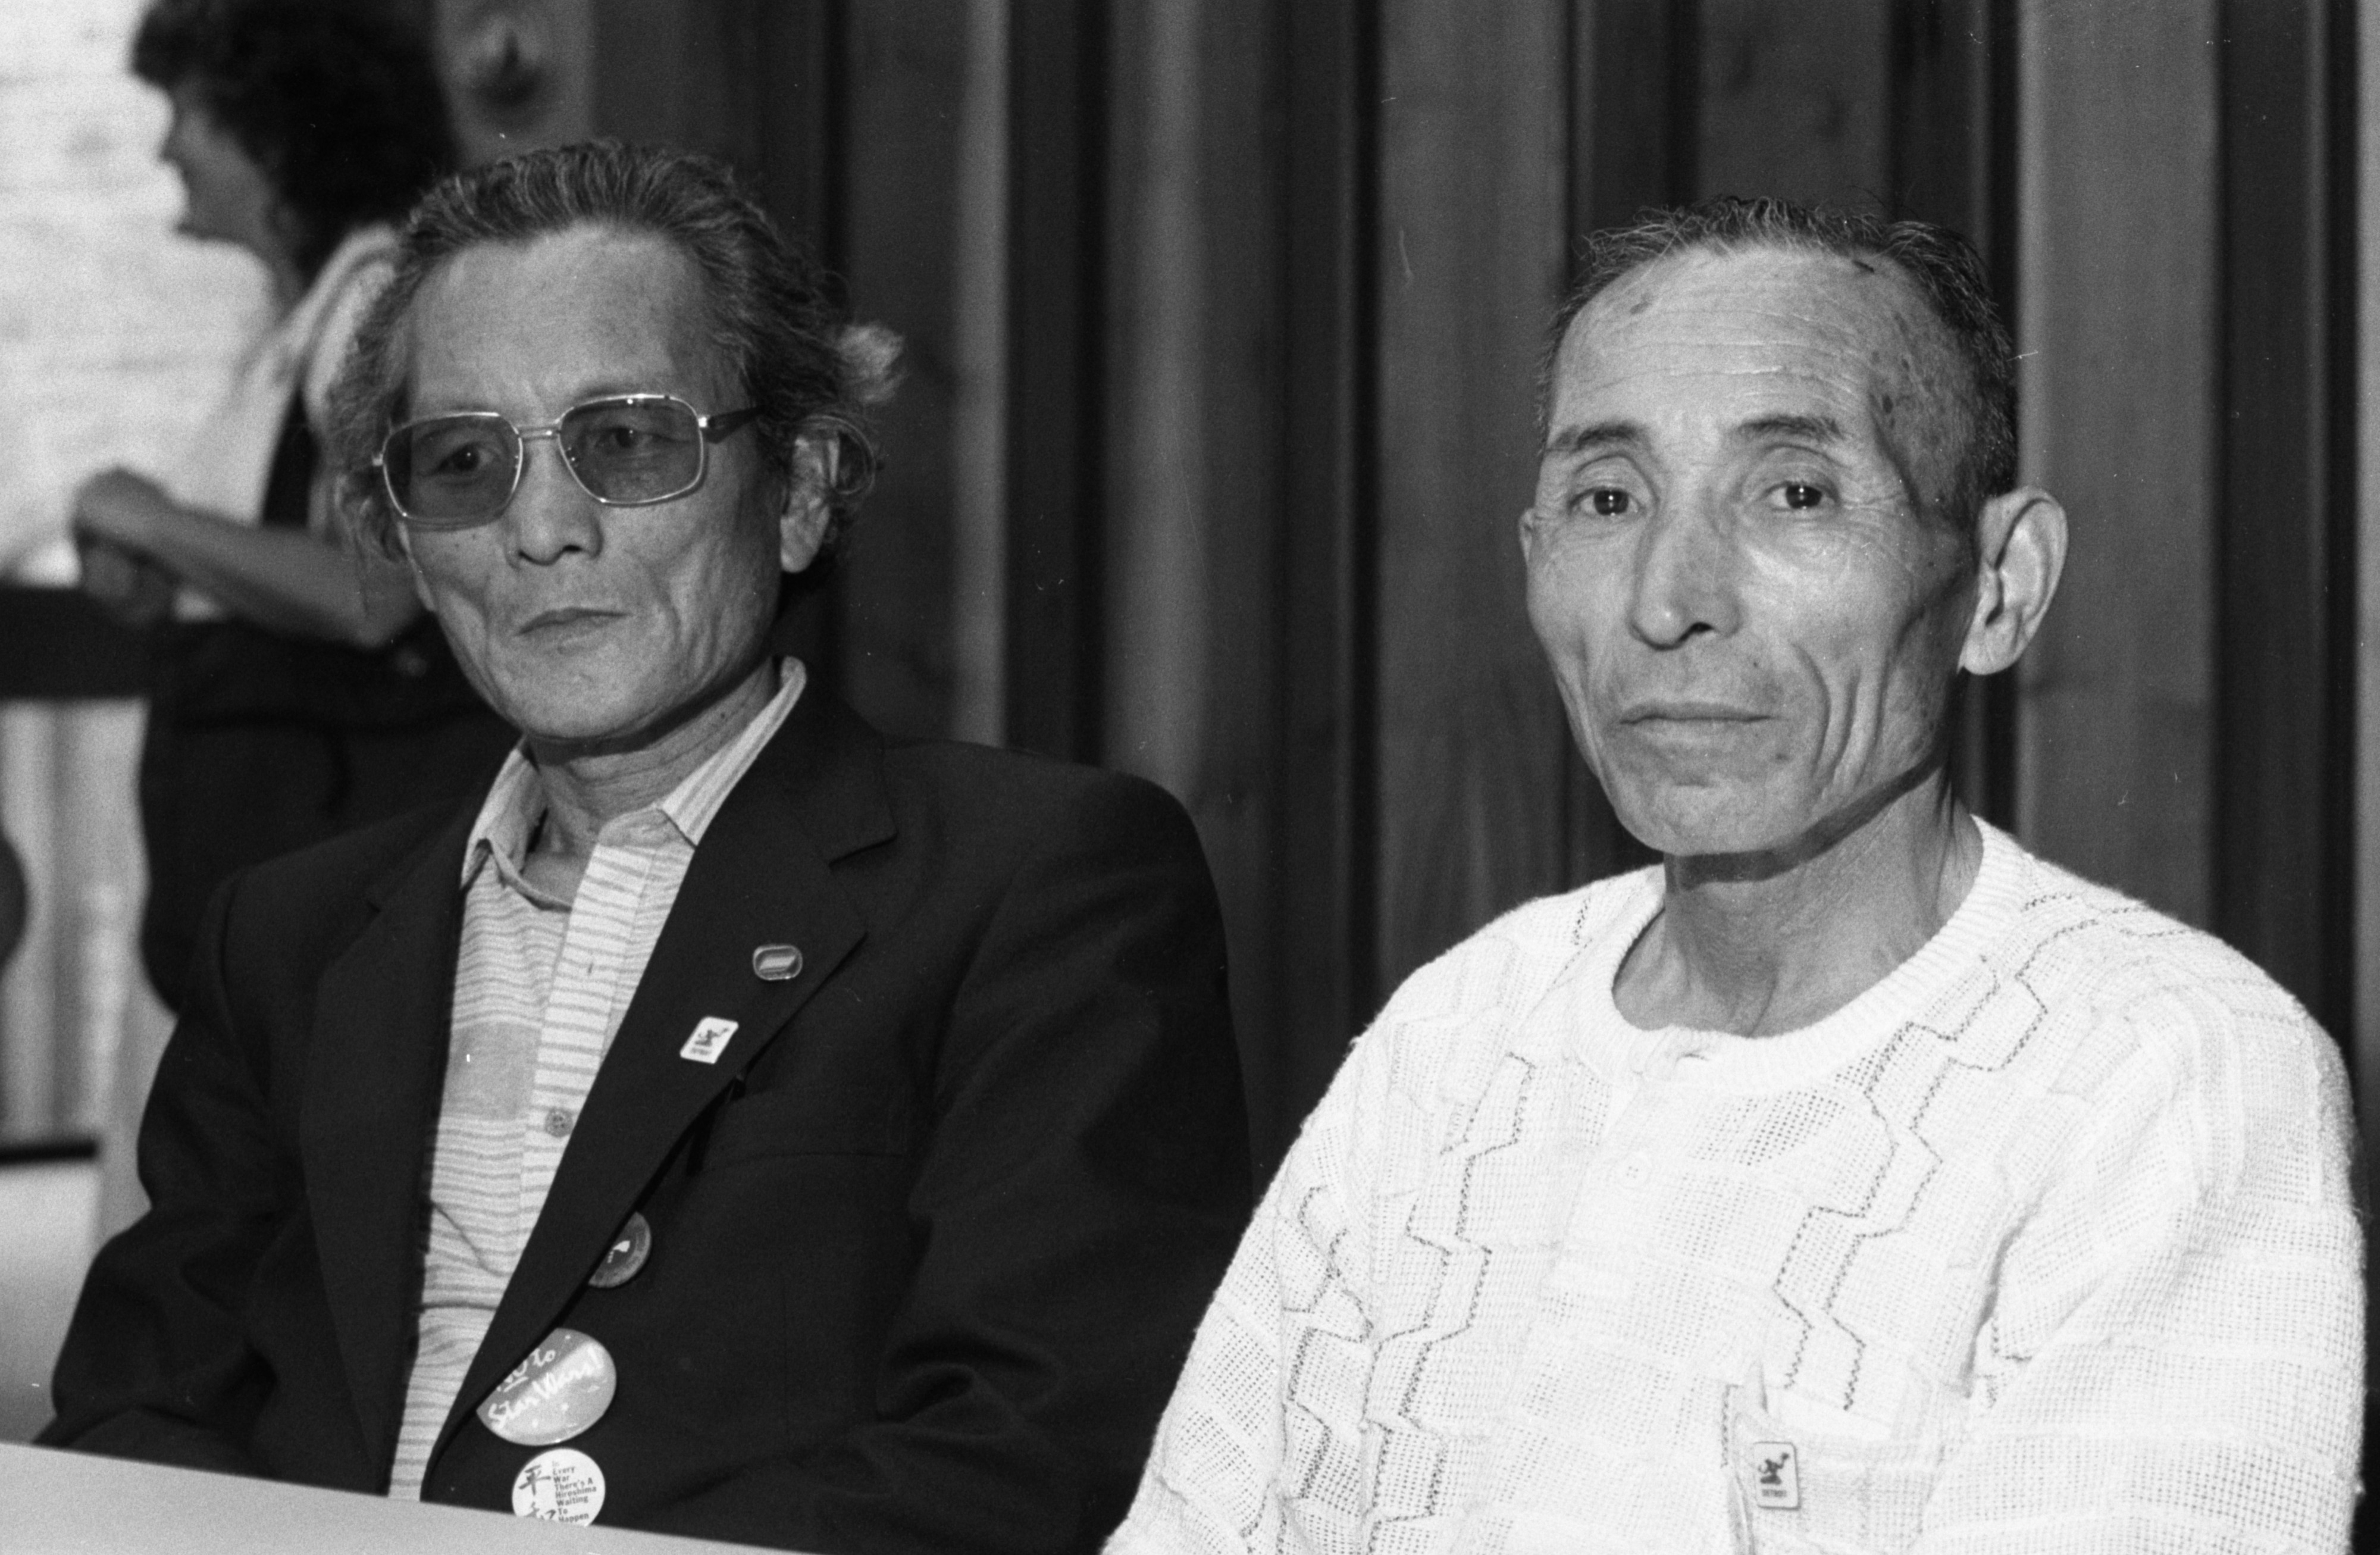 Akito Asano (left) & Koji Ando, Survivors Of Hiroshima, At A Speaking Engagement In Ann Arbor, July 28, 1985 image